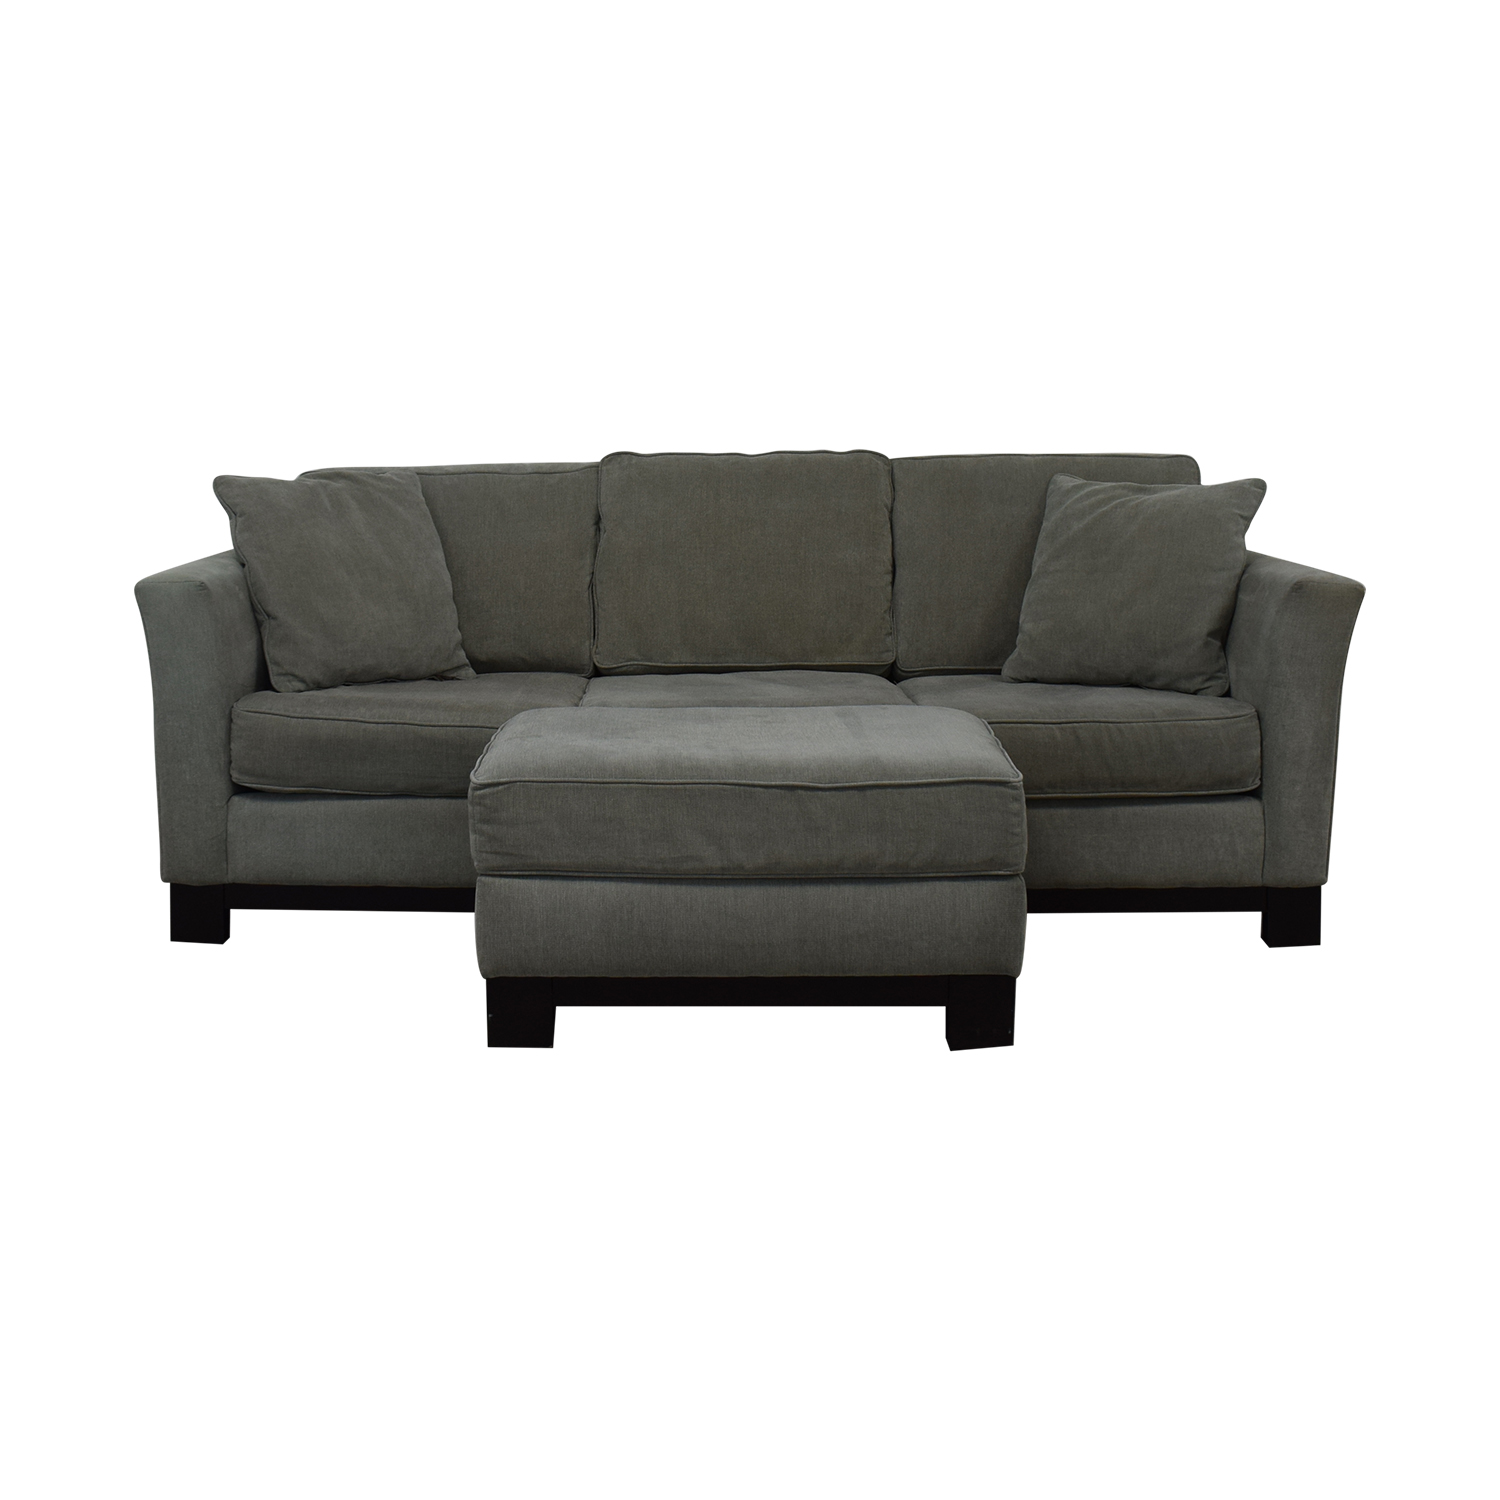 buy Macy's Modern Three Cushion Sofa And Ottoman Macy's